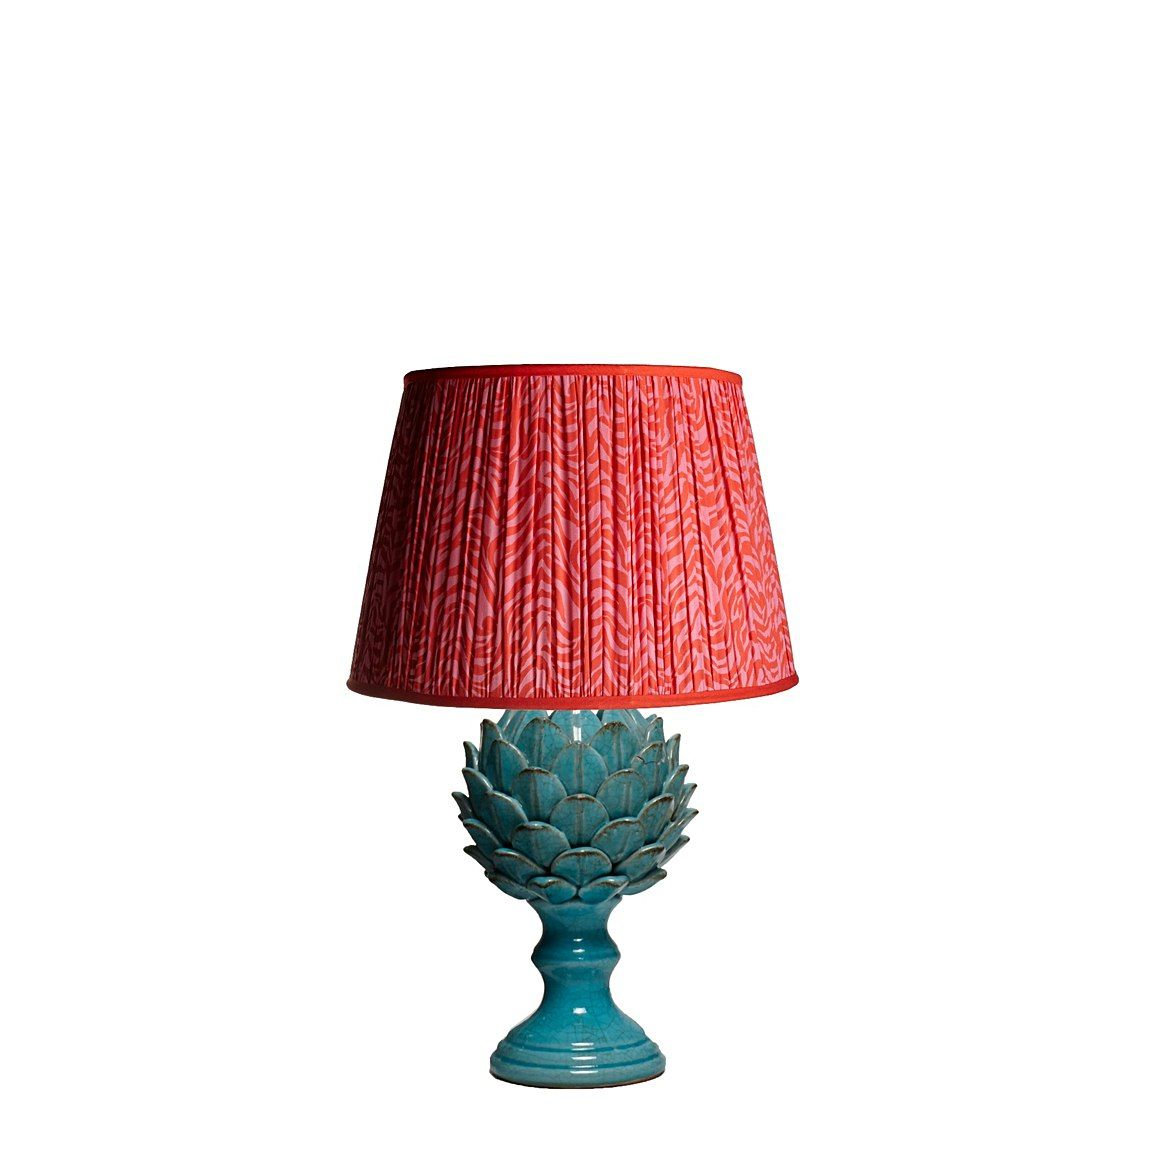 Larger Artur Table Lamp In A Turquoise Crackle Glaze Table Lamp